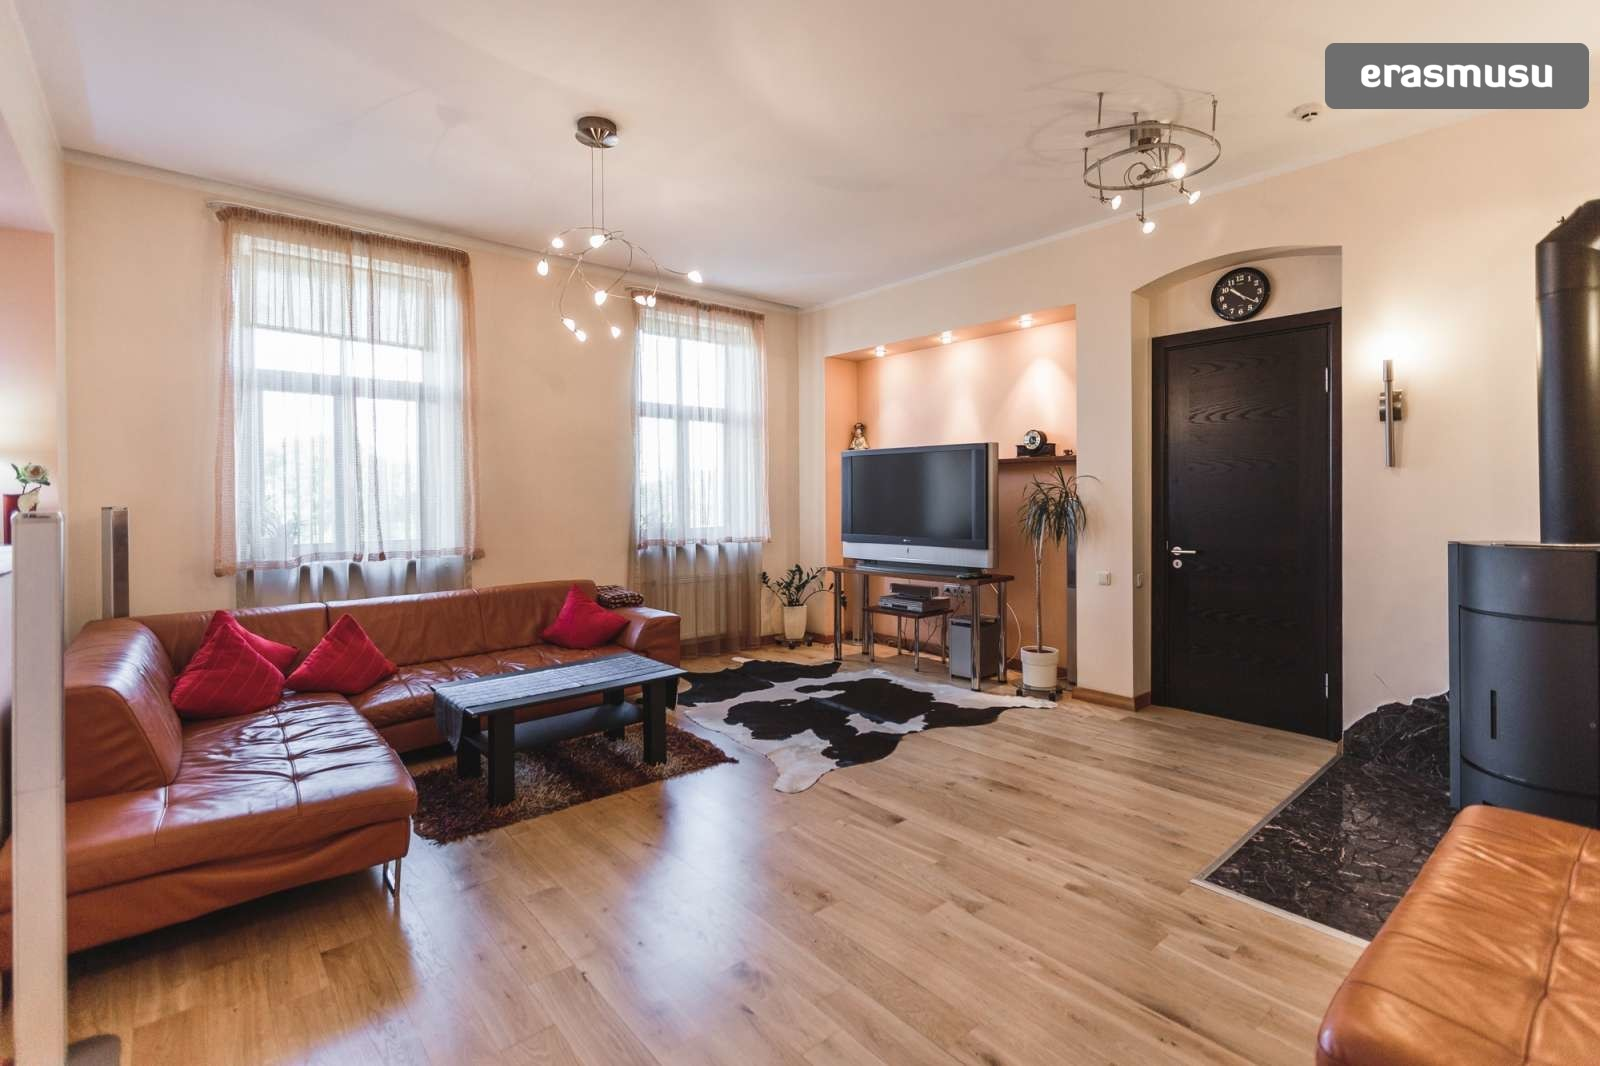 modern-4-bedroom-apartment-rent-centrs-140f4ee3385a0331b10fa0ee7